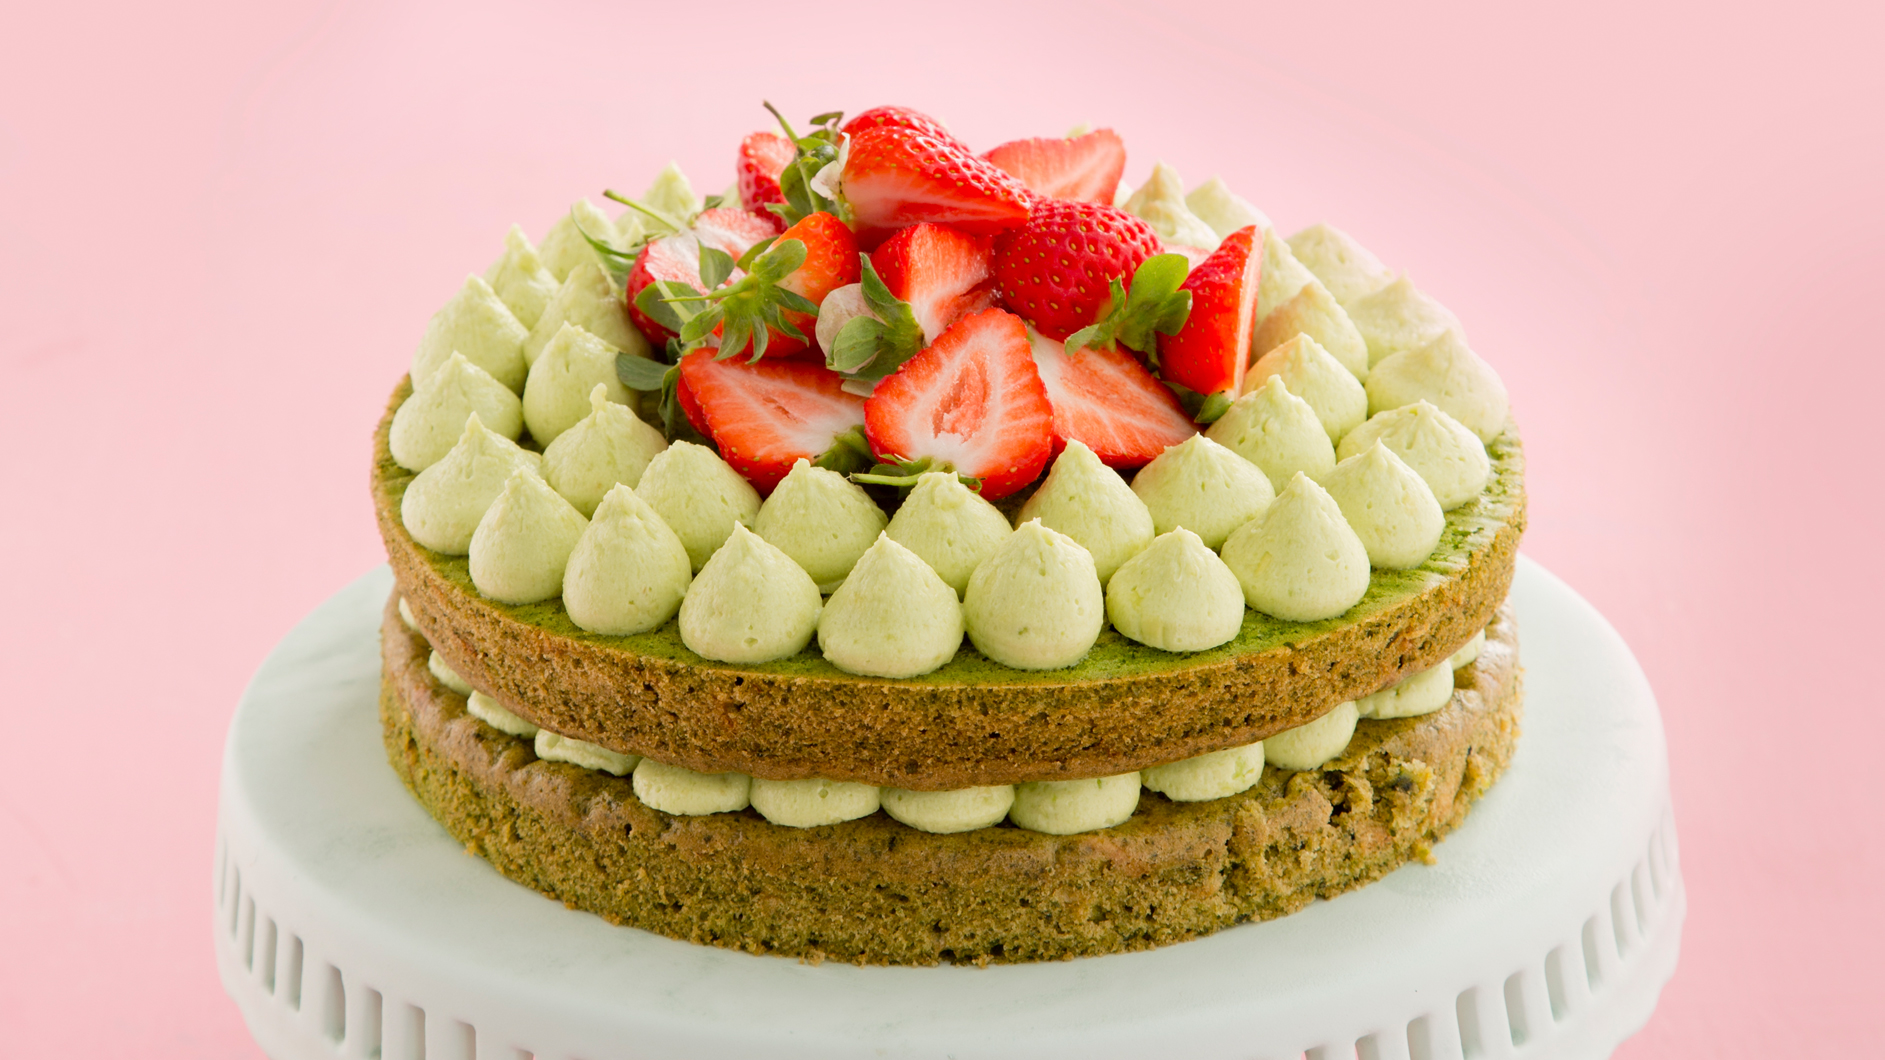 Phenomenal Spinach And Courgette Cake With Avocado Cream Frosting And Funny Birthday Cards Online Hendilapandamsfinfo